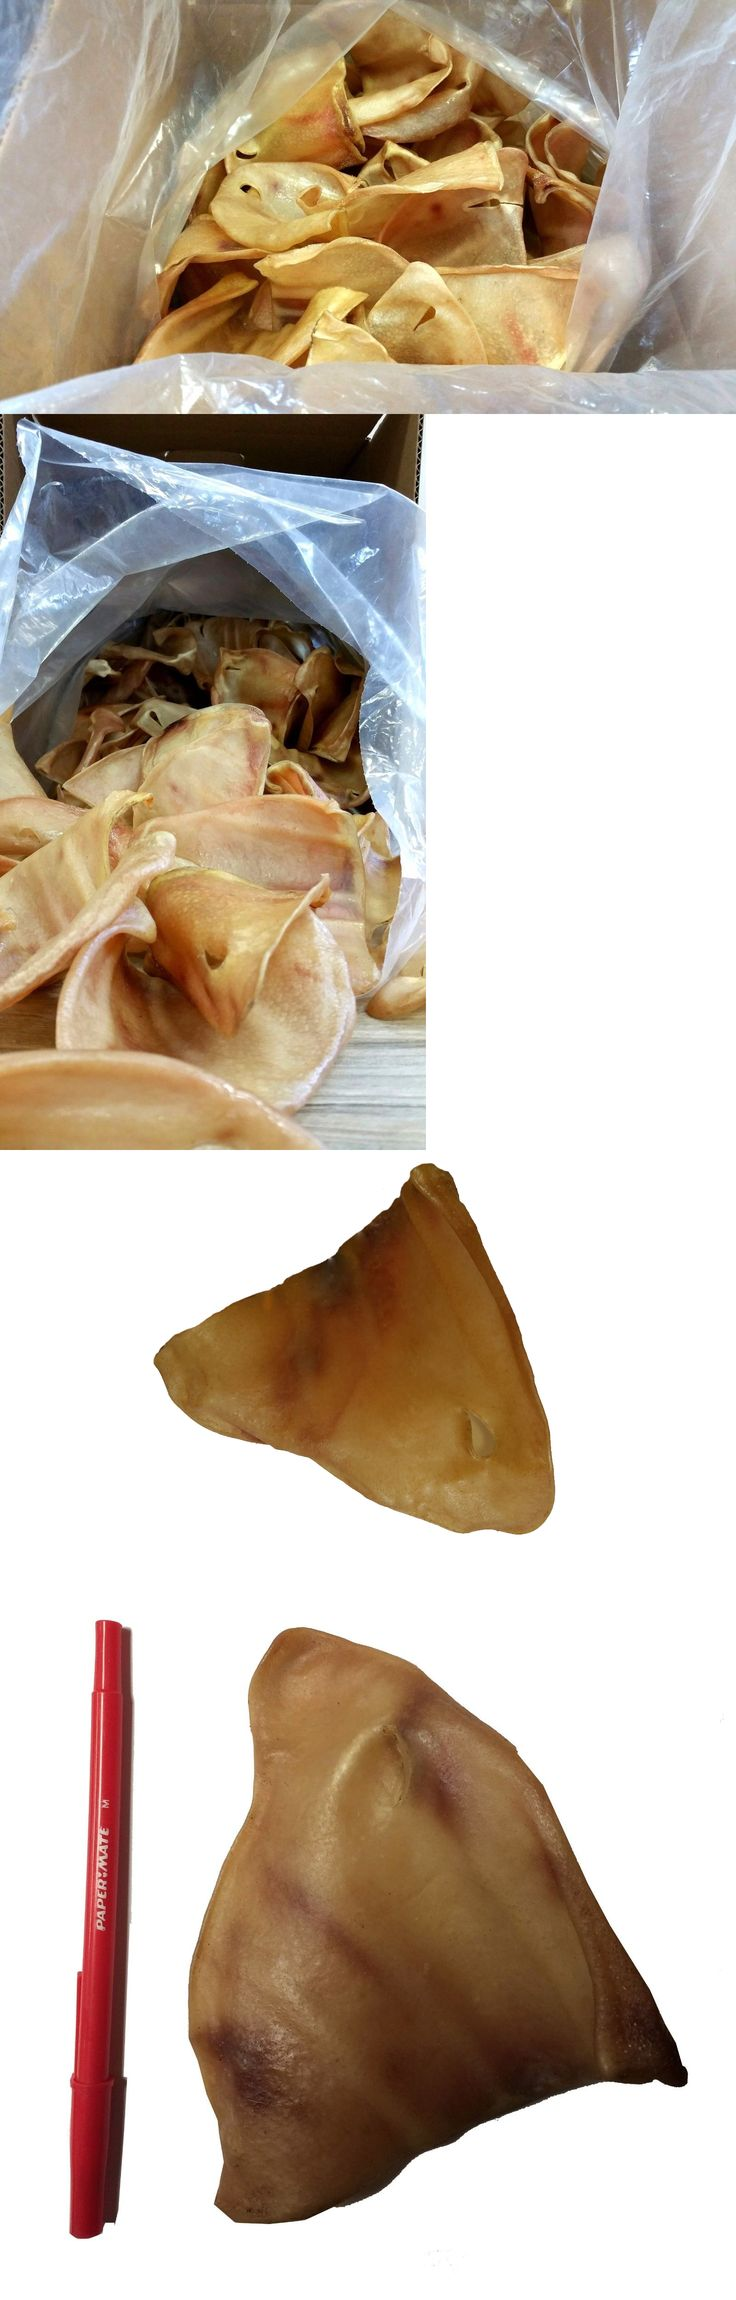 Dog Chews and Treats 77664: Pig Ears For Dogs 100 Ct |Full Large Pig Ears | Bulk Dog Treats From 123Treats BUY IT NOW ONLY: $101.99